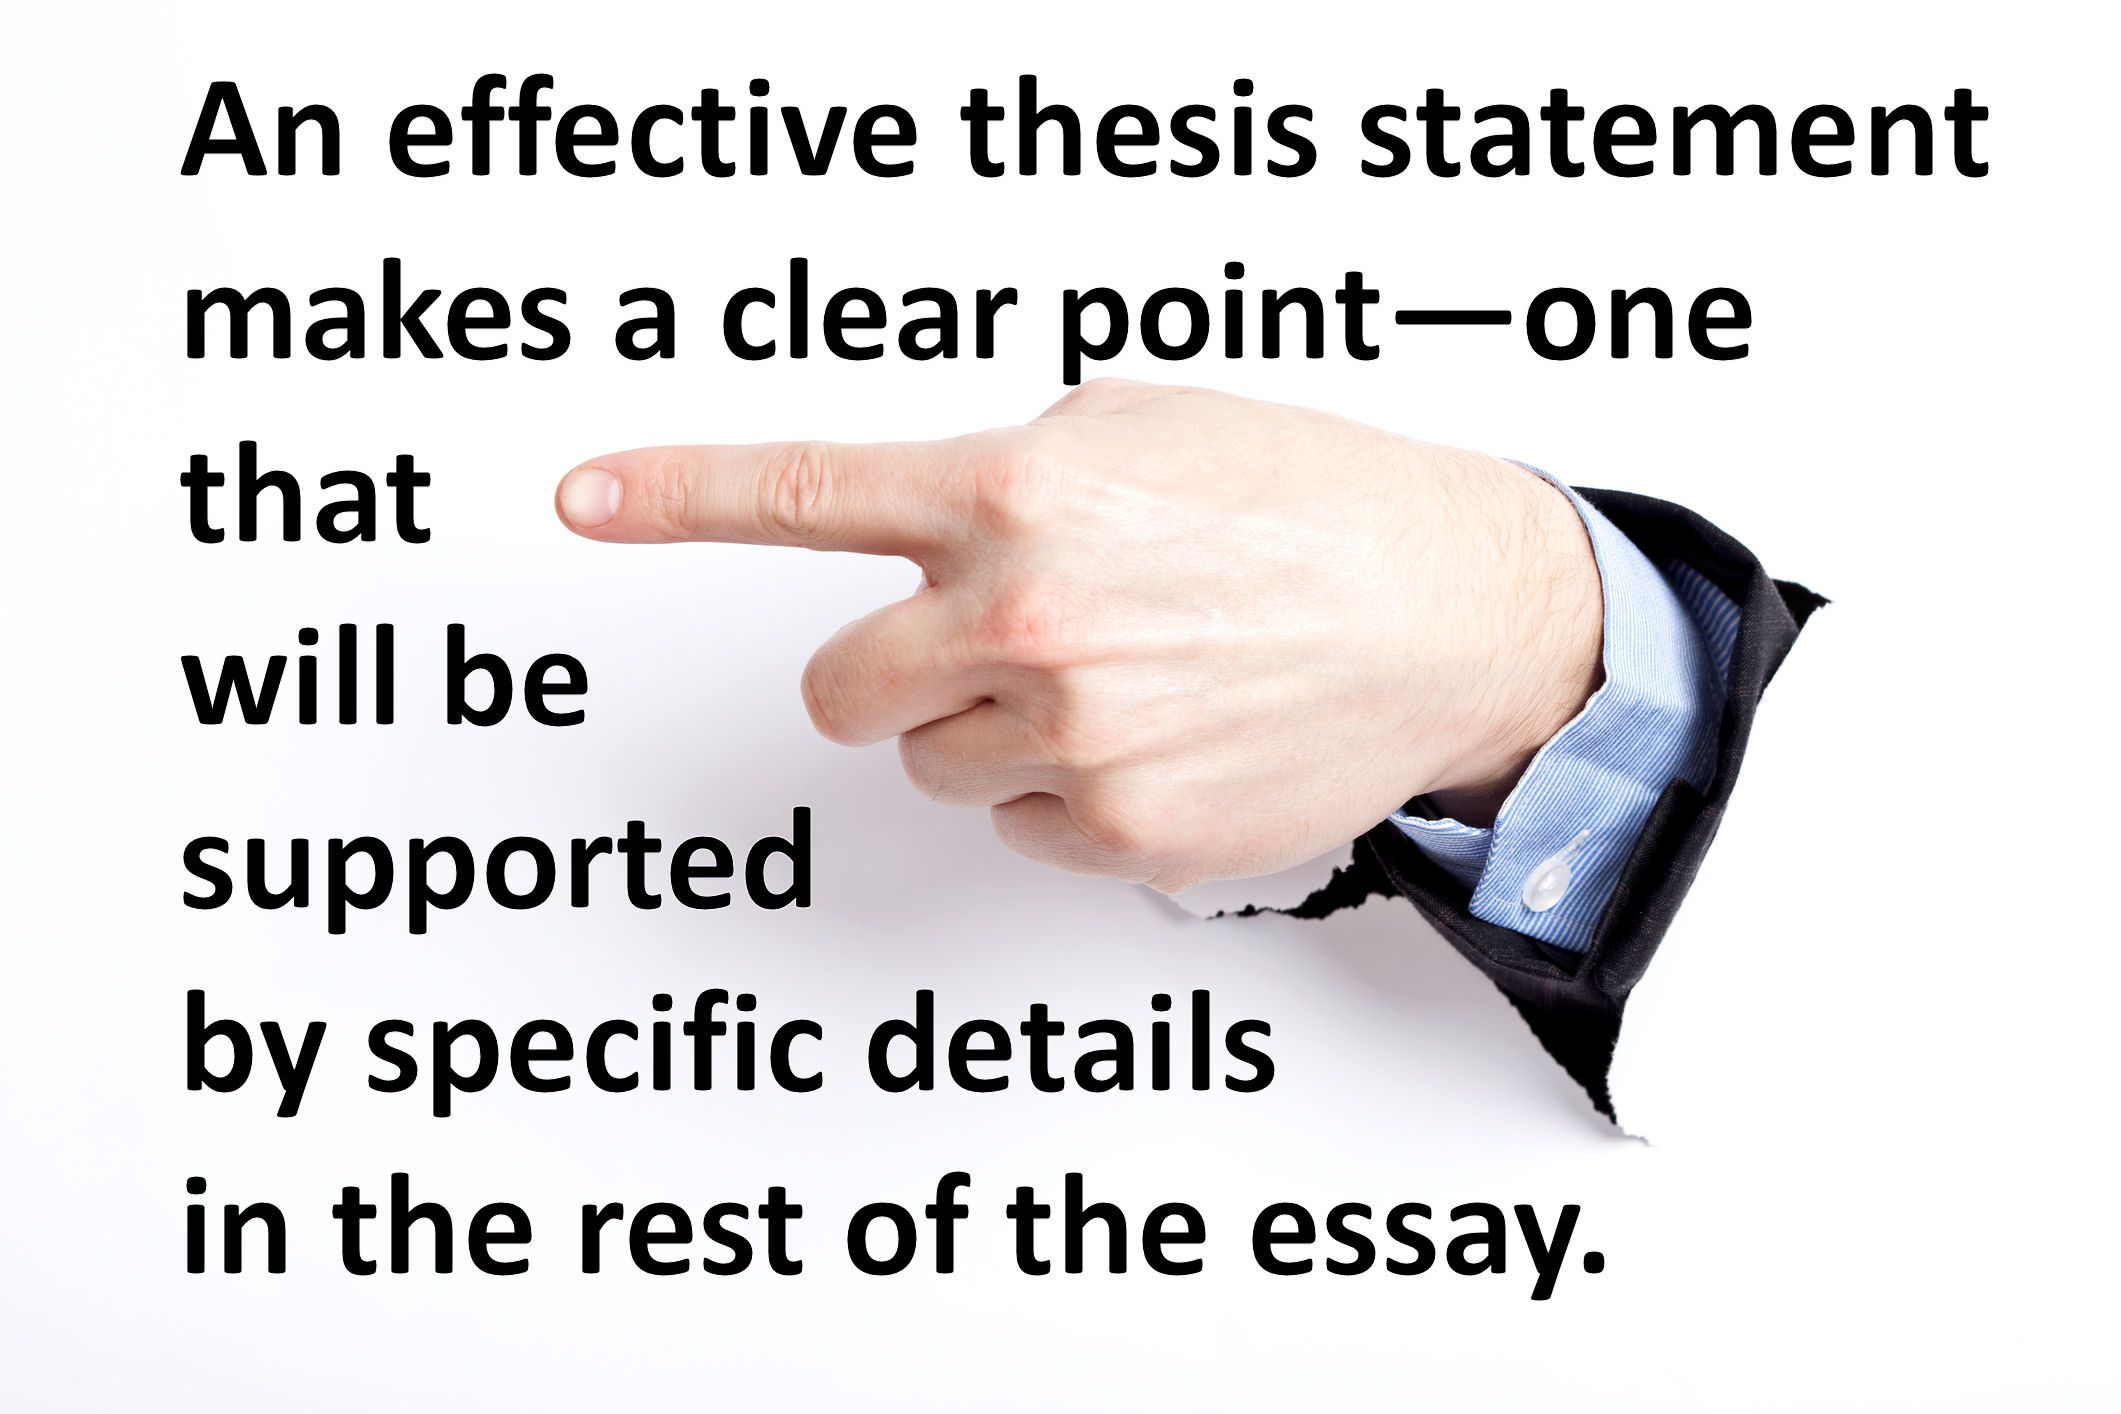 How To Use A Thesis Statement In An Essay  Example Essay Papers also Business Law Essays Exercise In Identifying Effective Thesis Statements Example Proposal Essay